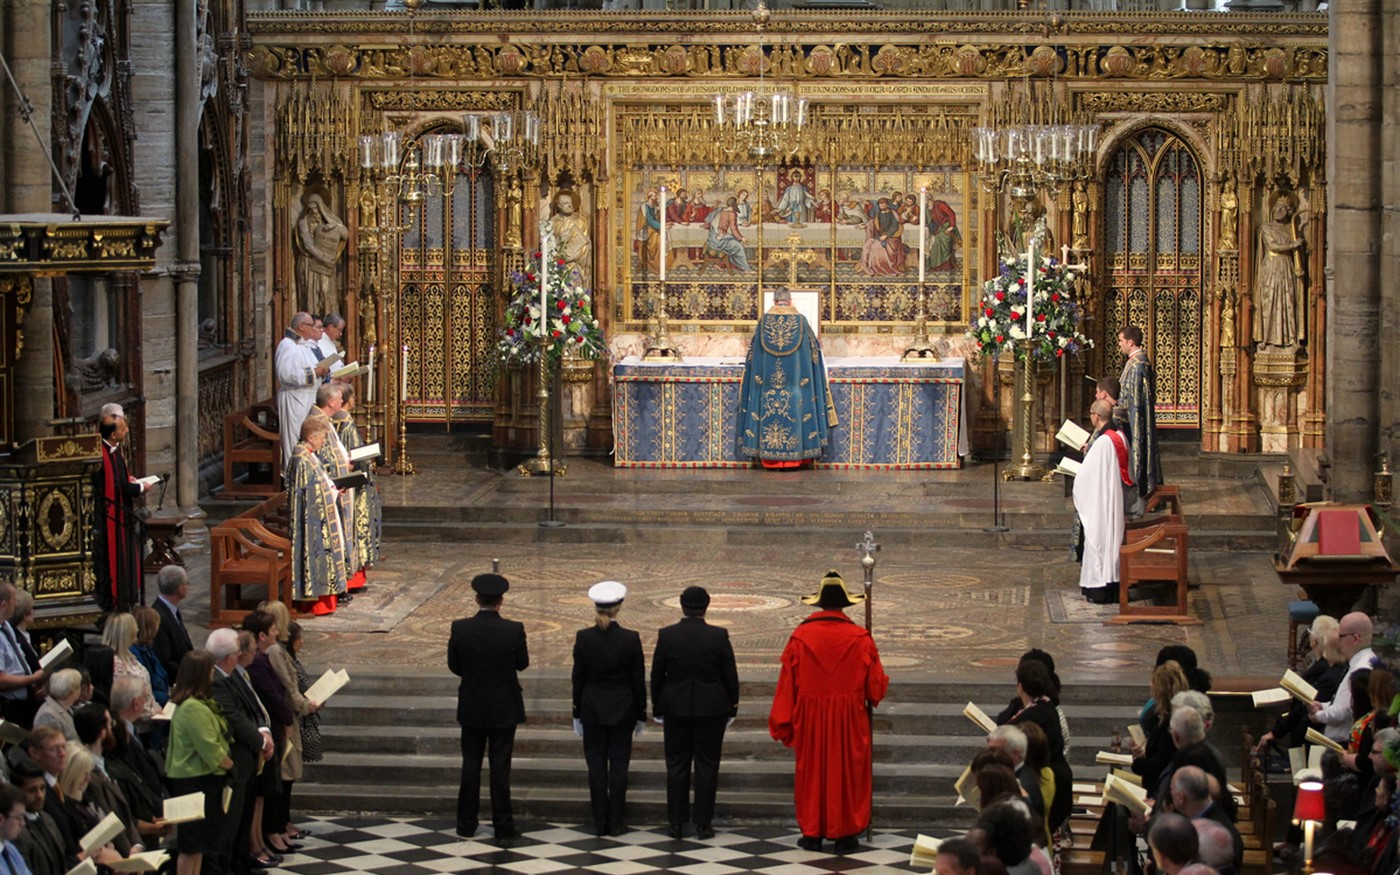 The Royal Charter is placed on the High Altar